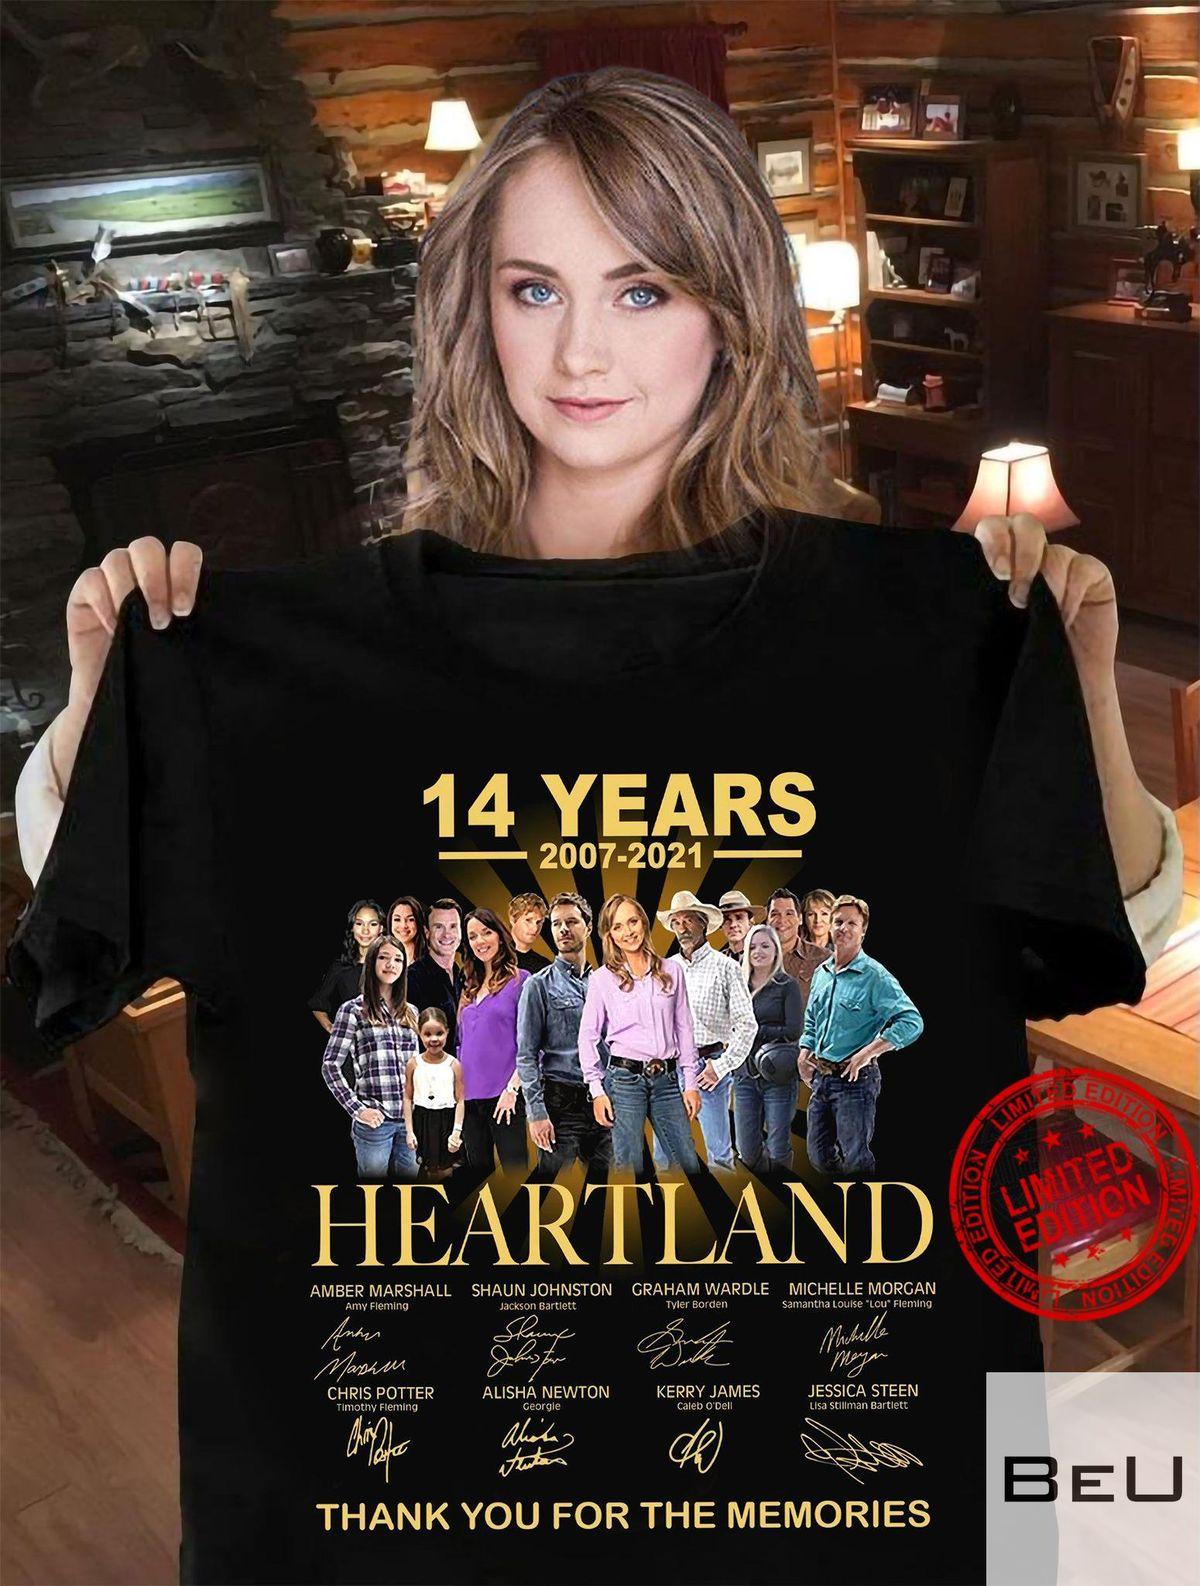 14 Years 2007-2021 Heartland Thank You For The Memories Shirt